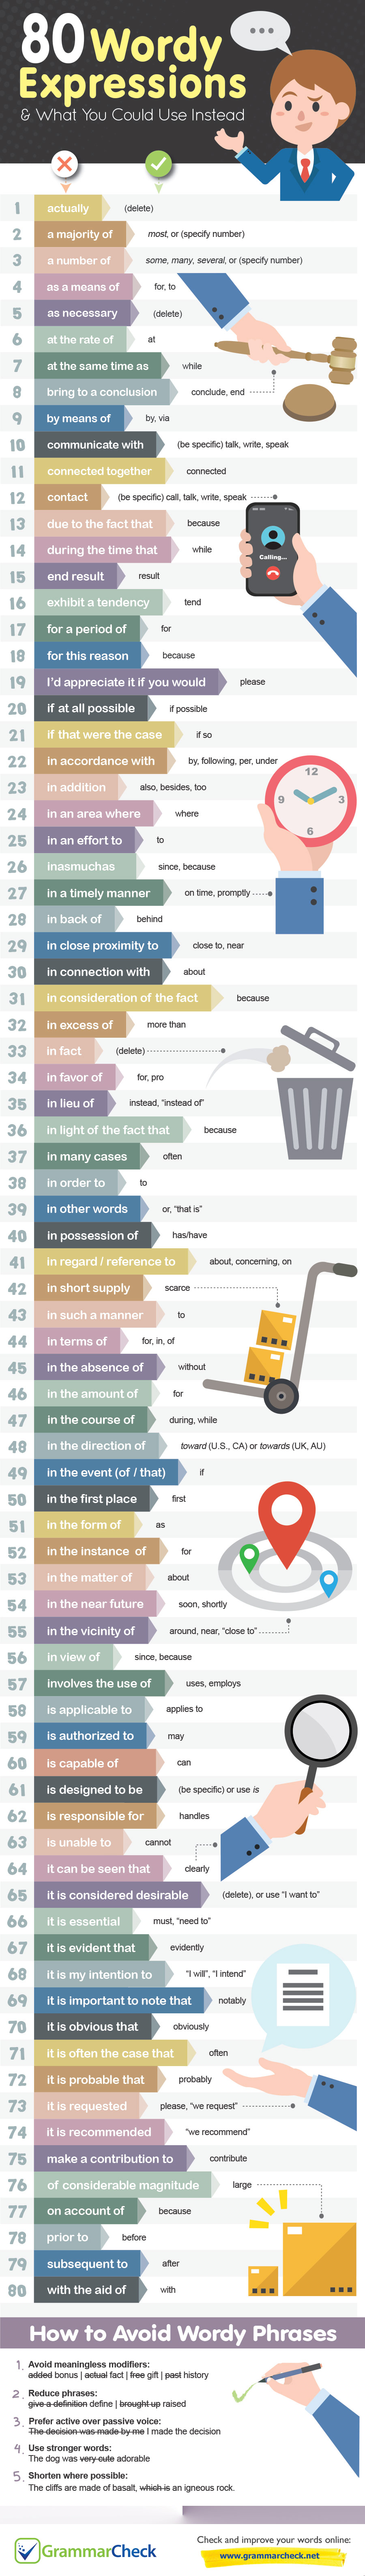 80 Wordy Expressions & What You Could Use Instead (Infographic)